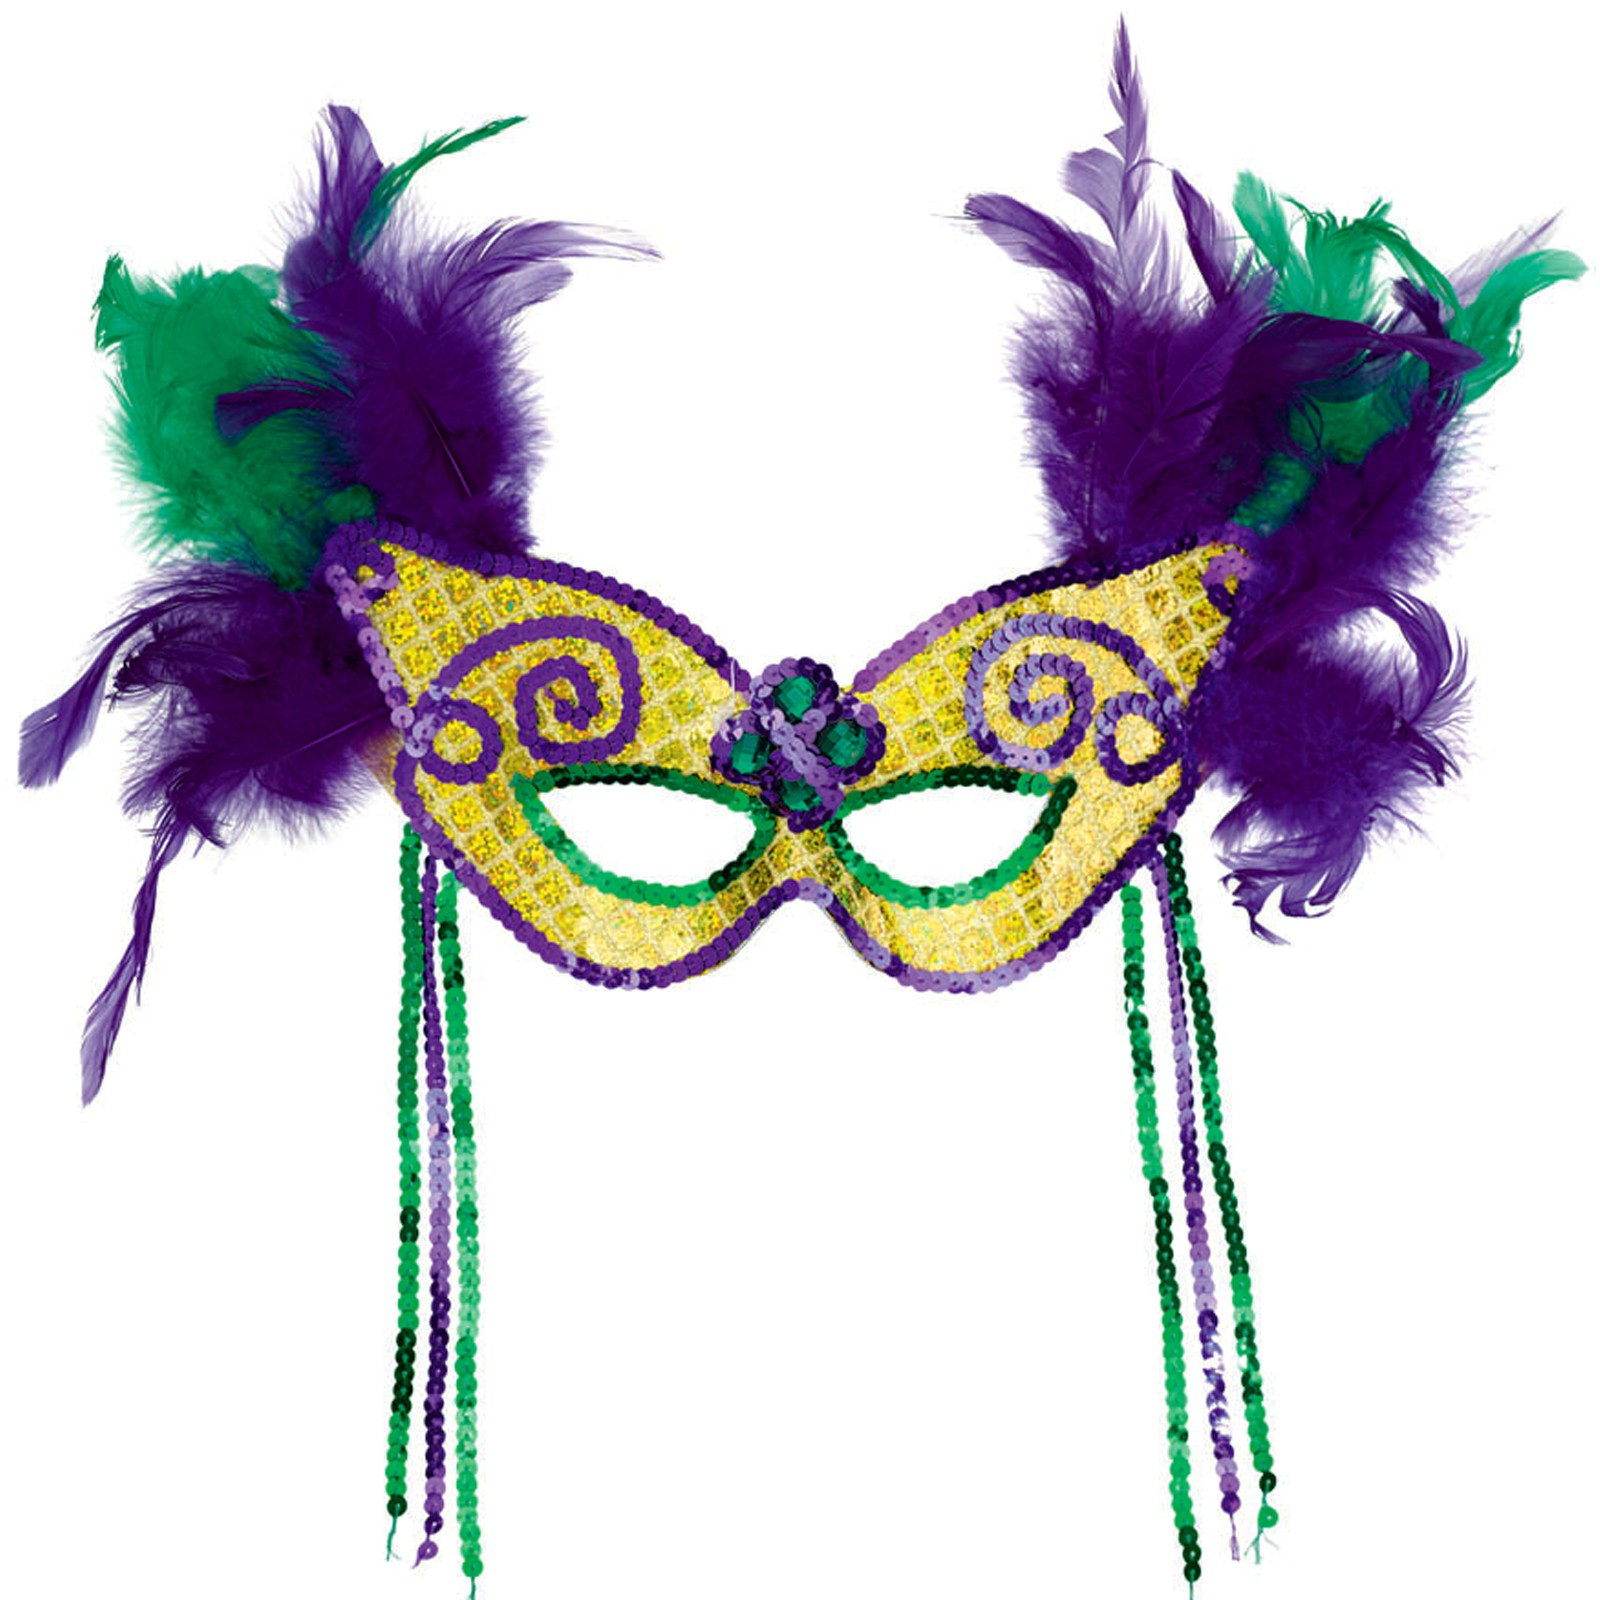 hight resolution of 1600x1600 mardi gras mask clipart group